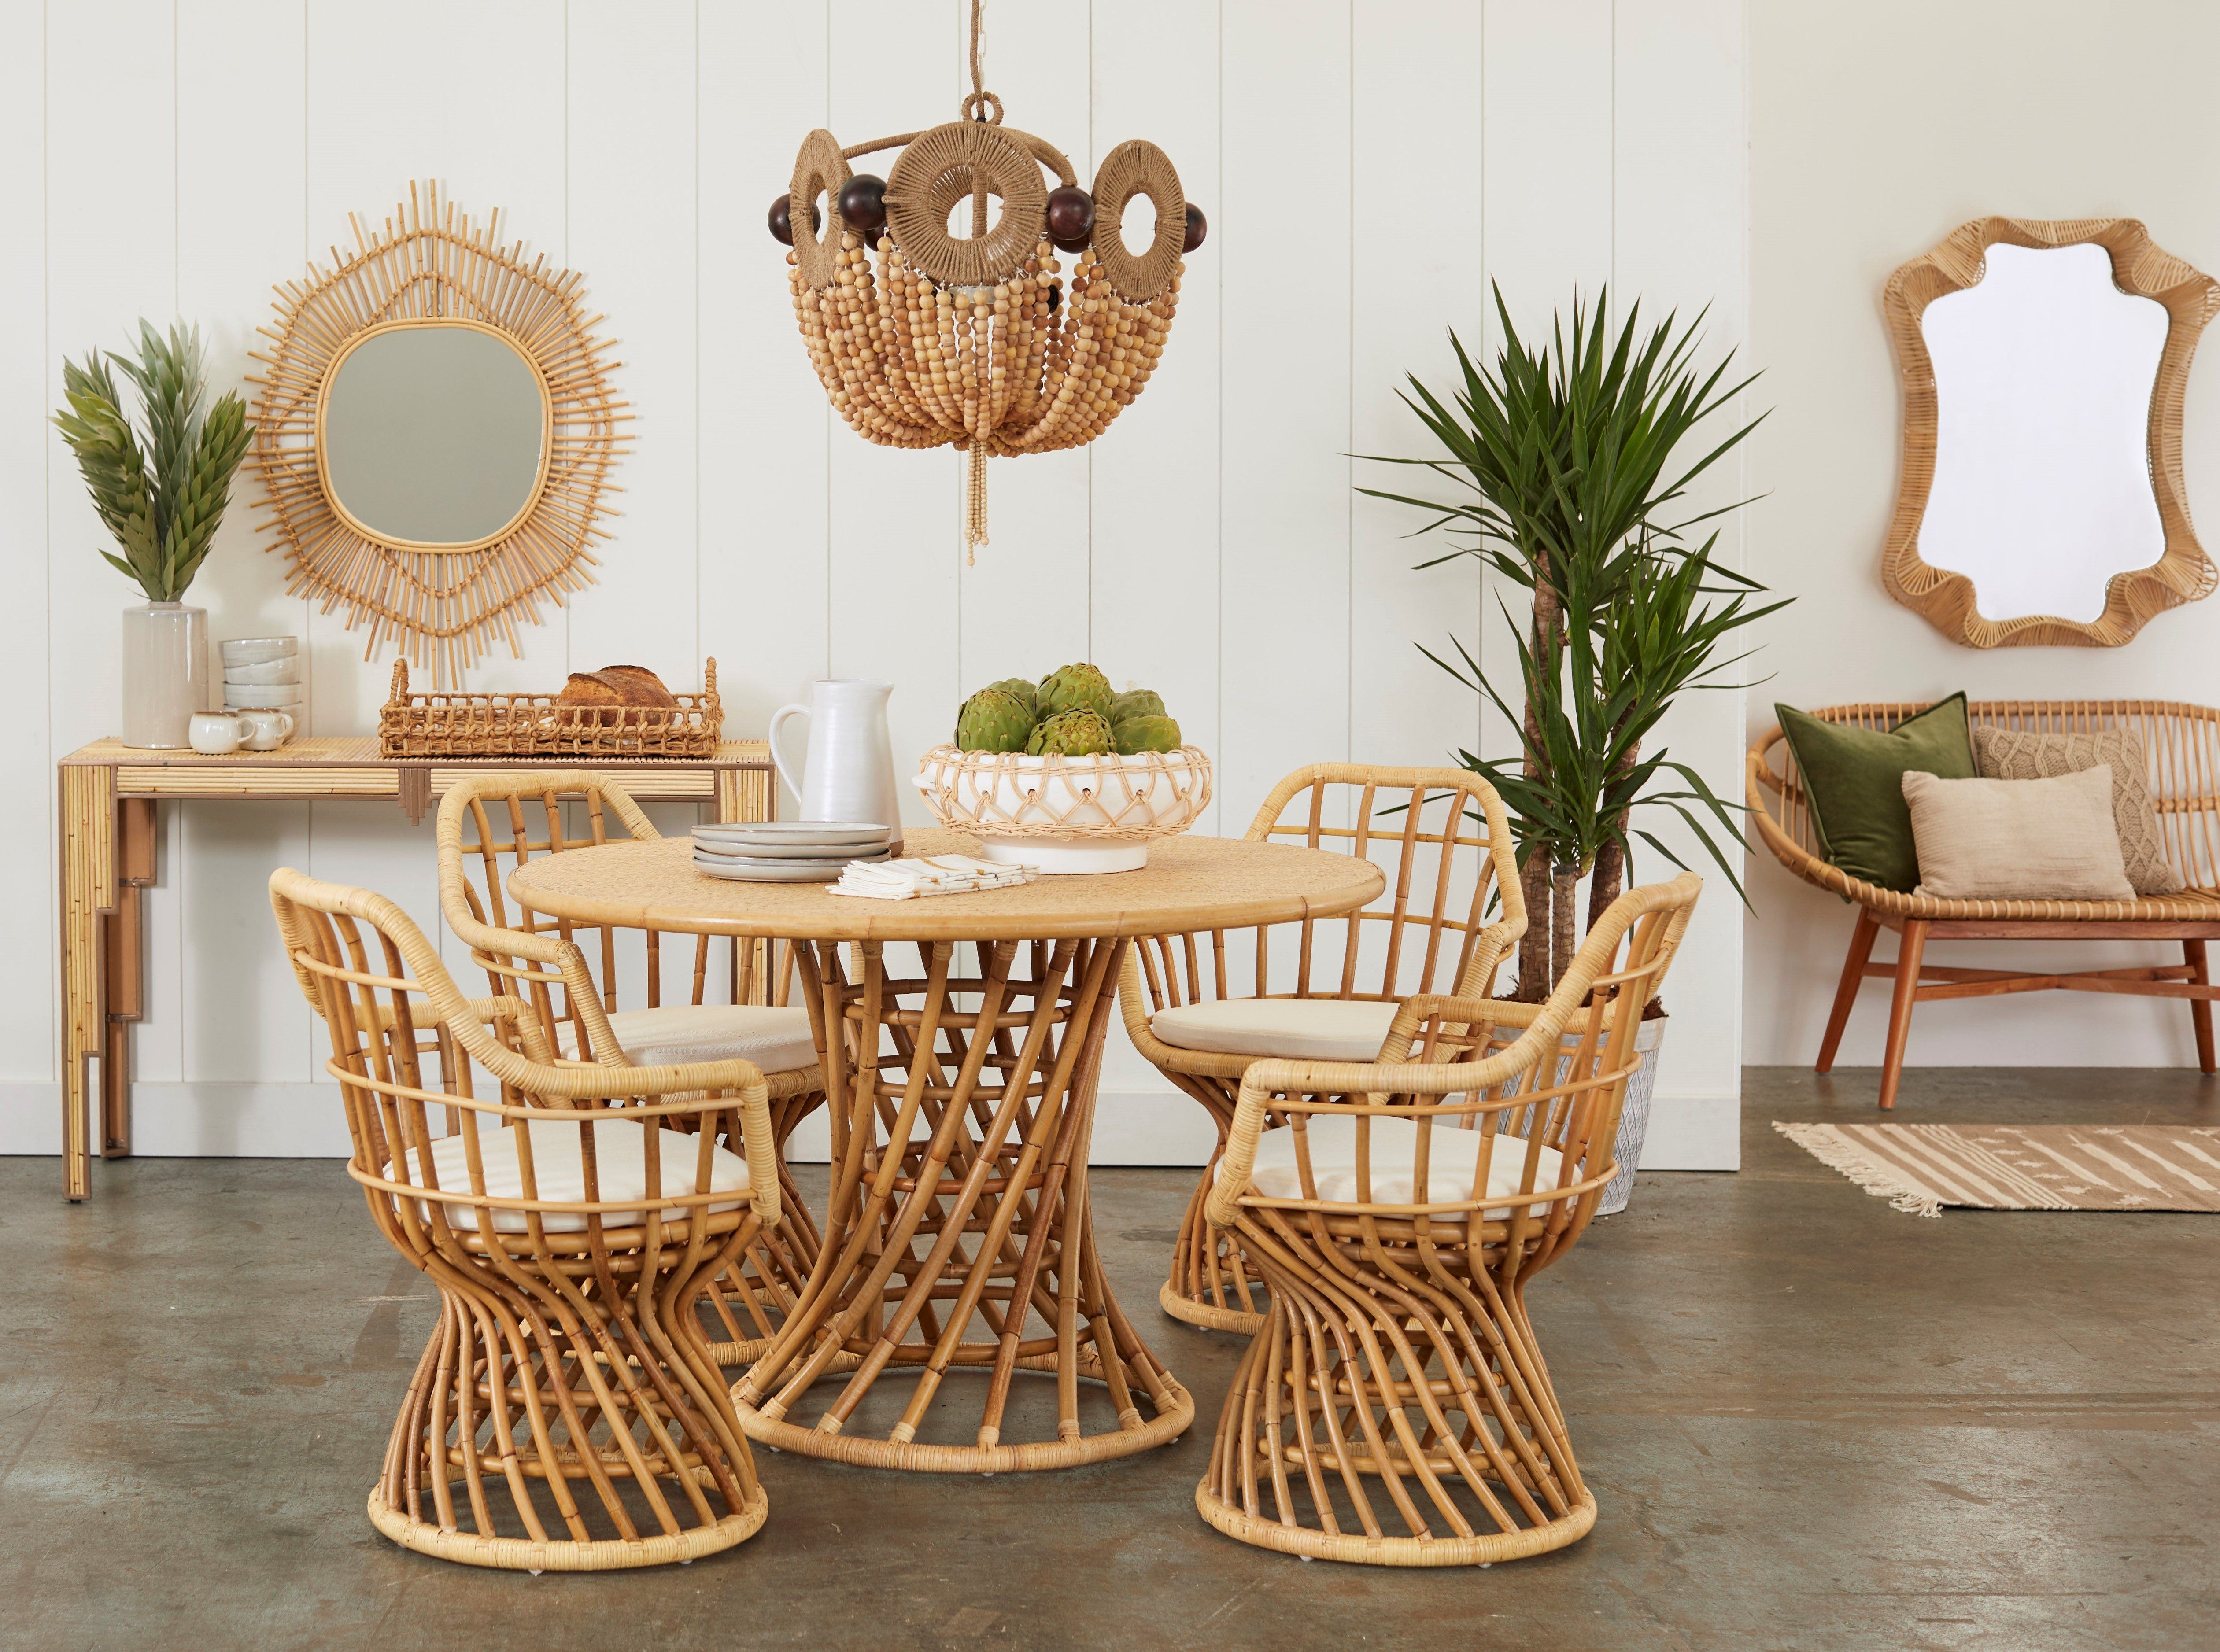 39+ Round wicker dining table and chairs Tips